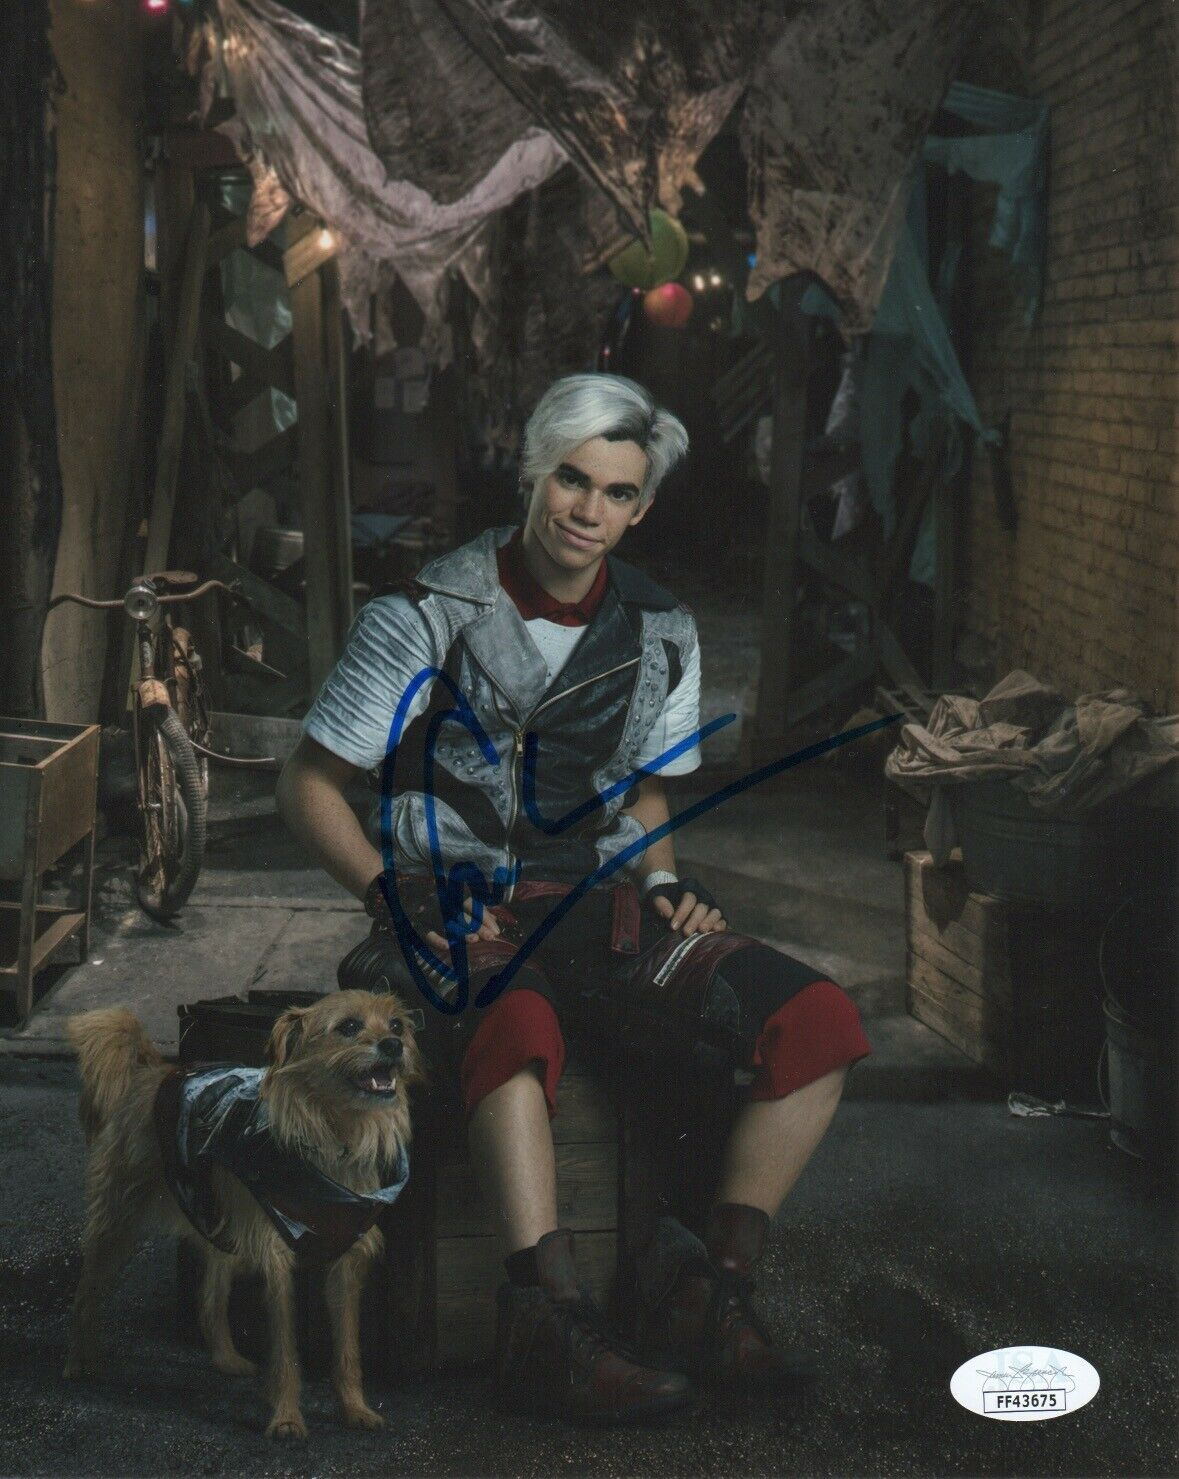 Cameron Boyce Descendants Signed Autograph 8x10 Photo